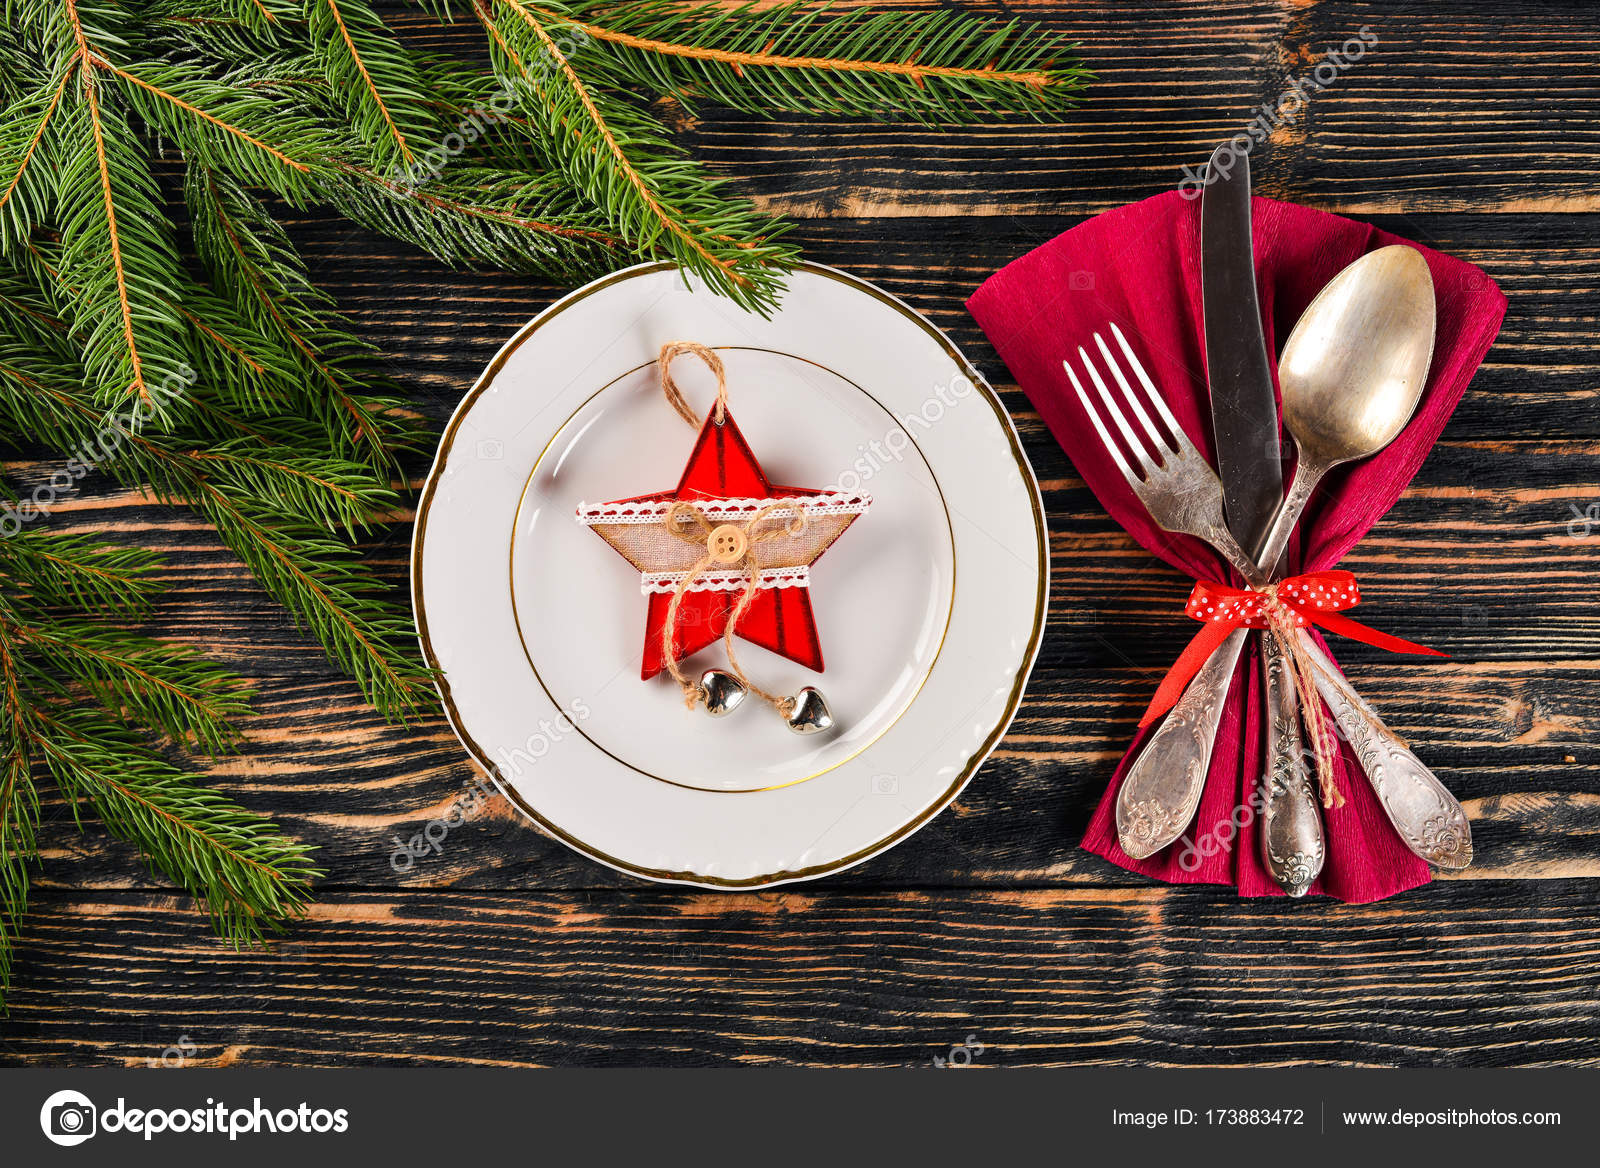 Christmas Table Decoration Christmas Dinner Plate Cutlery Decorated Festive Decorations Winter Holidays Christmas Card Free Space For Your Text Merry Christmas Happy New Year Stock Photo C Yarunivphoto 173883472